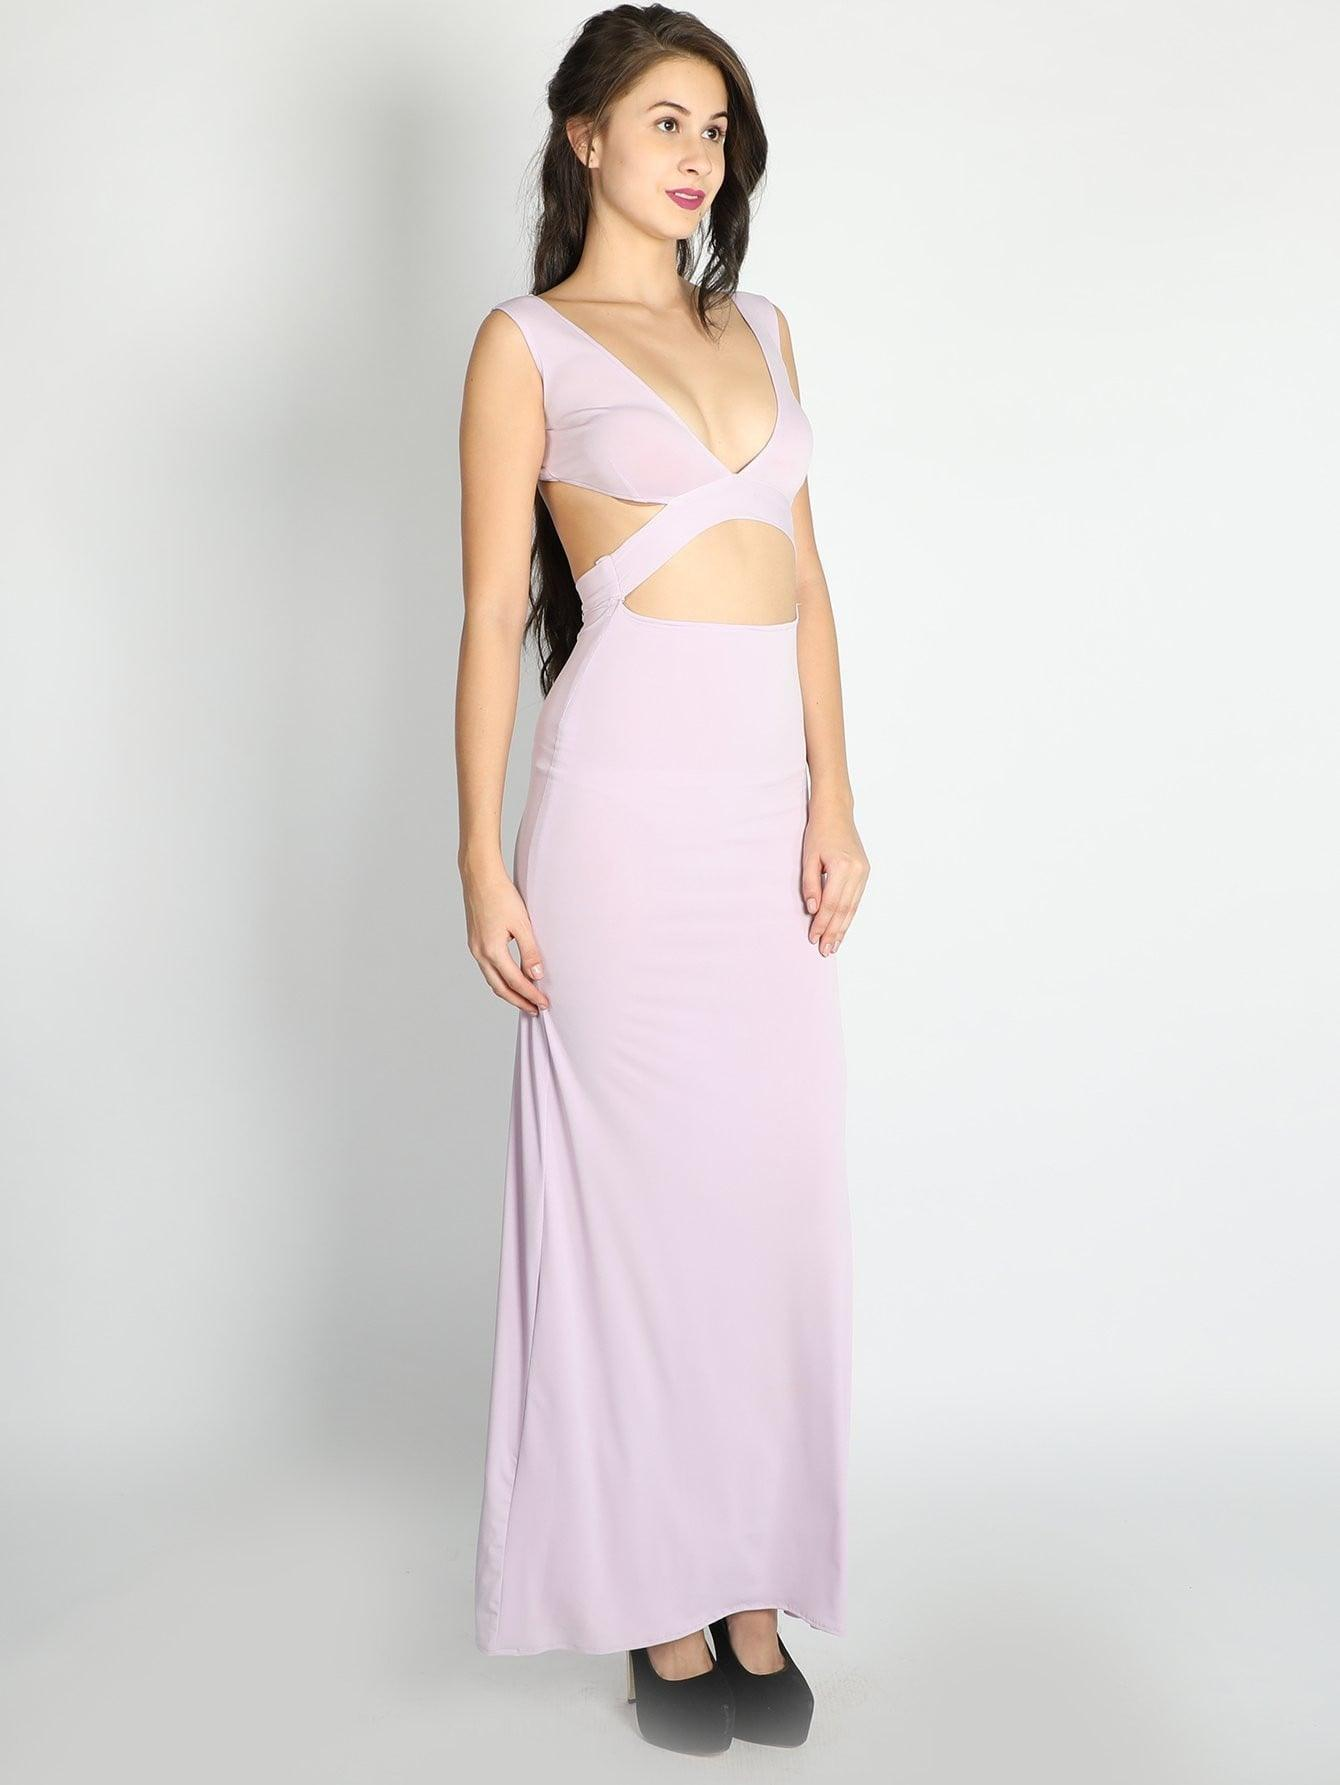 Lilac Cut Out Bodyfit Gown - Dresses - Zooomberg - Zoomberg